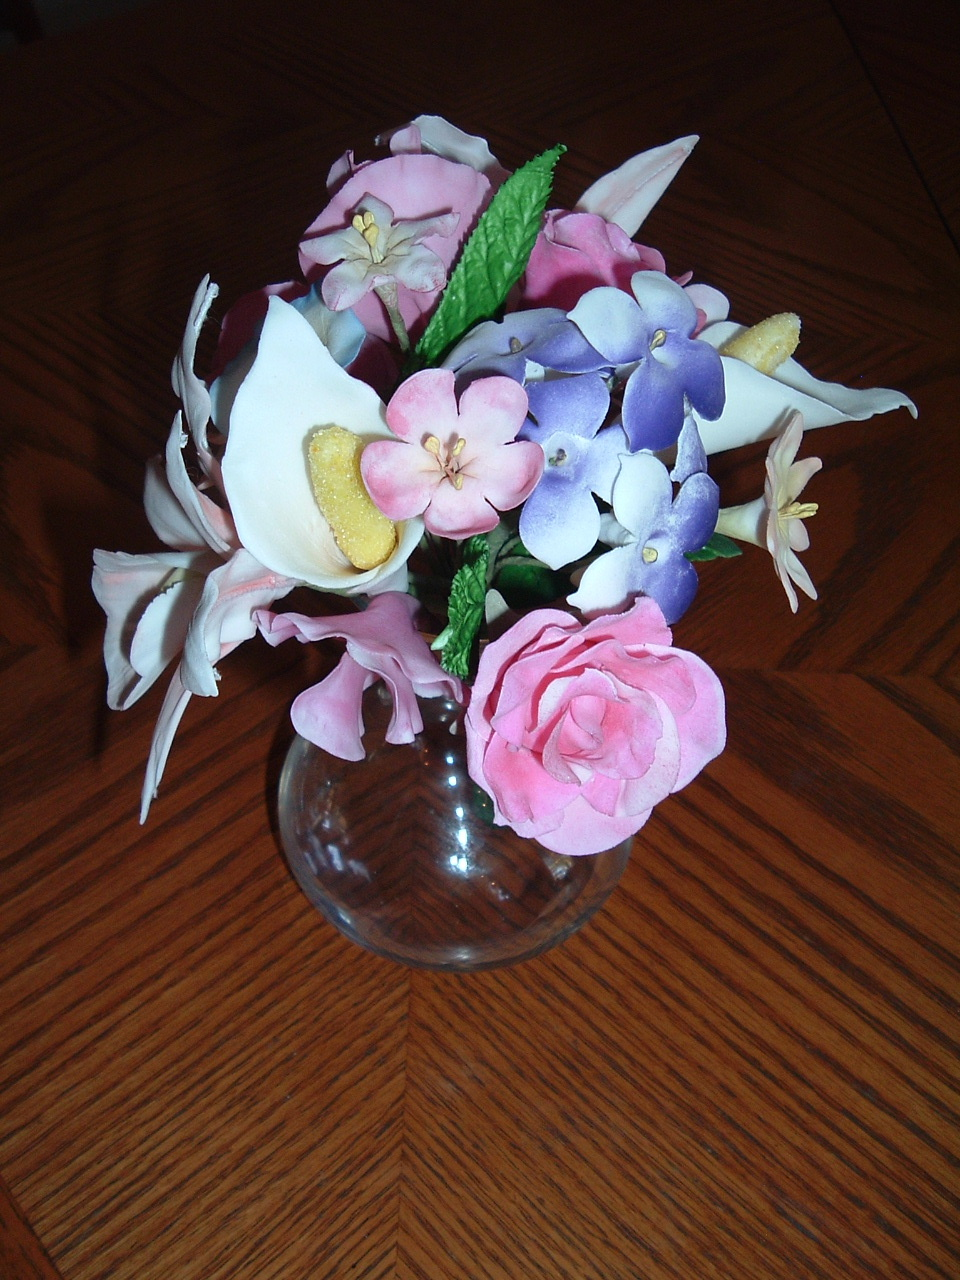 Gum Paste Flowers Every Baking Moment